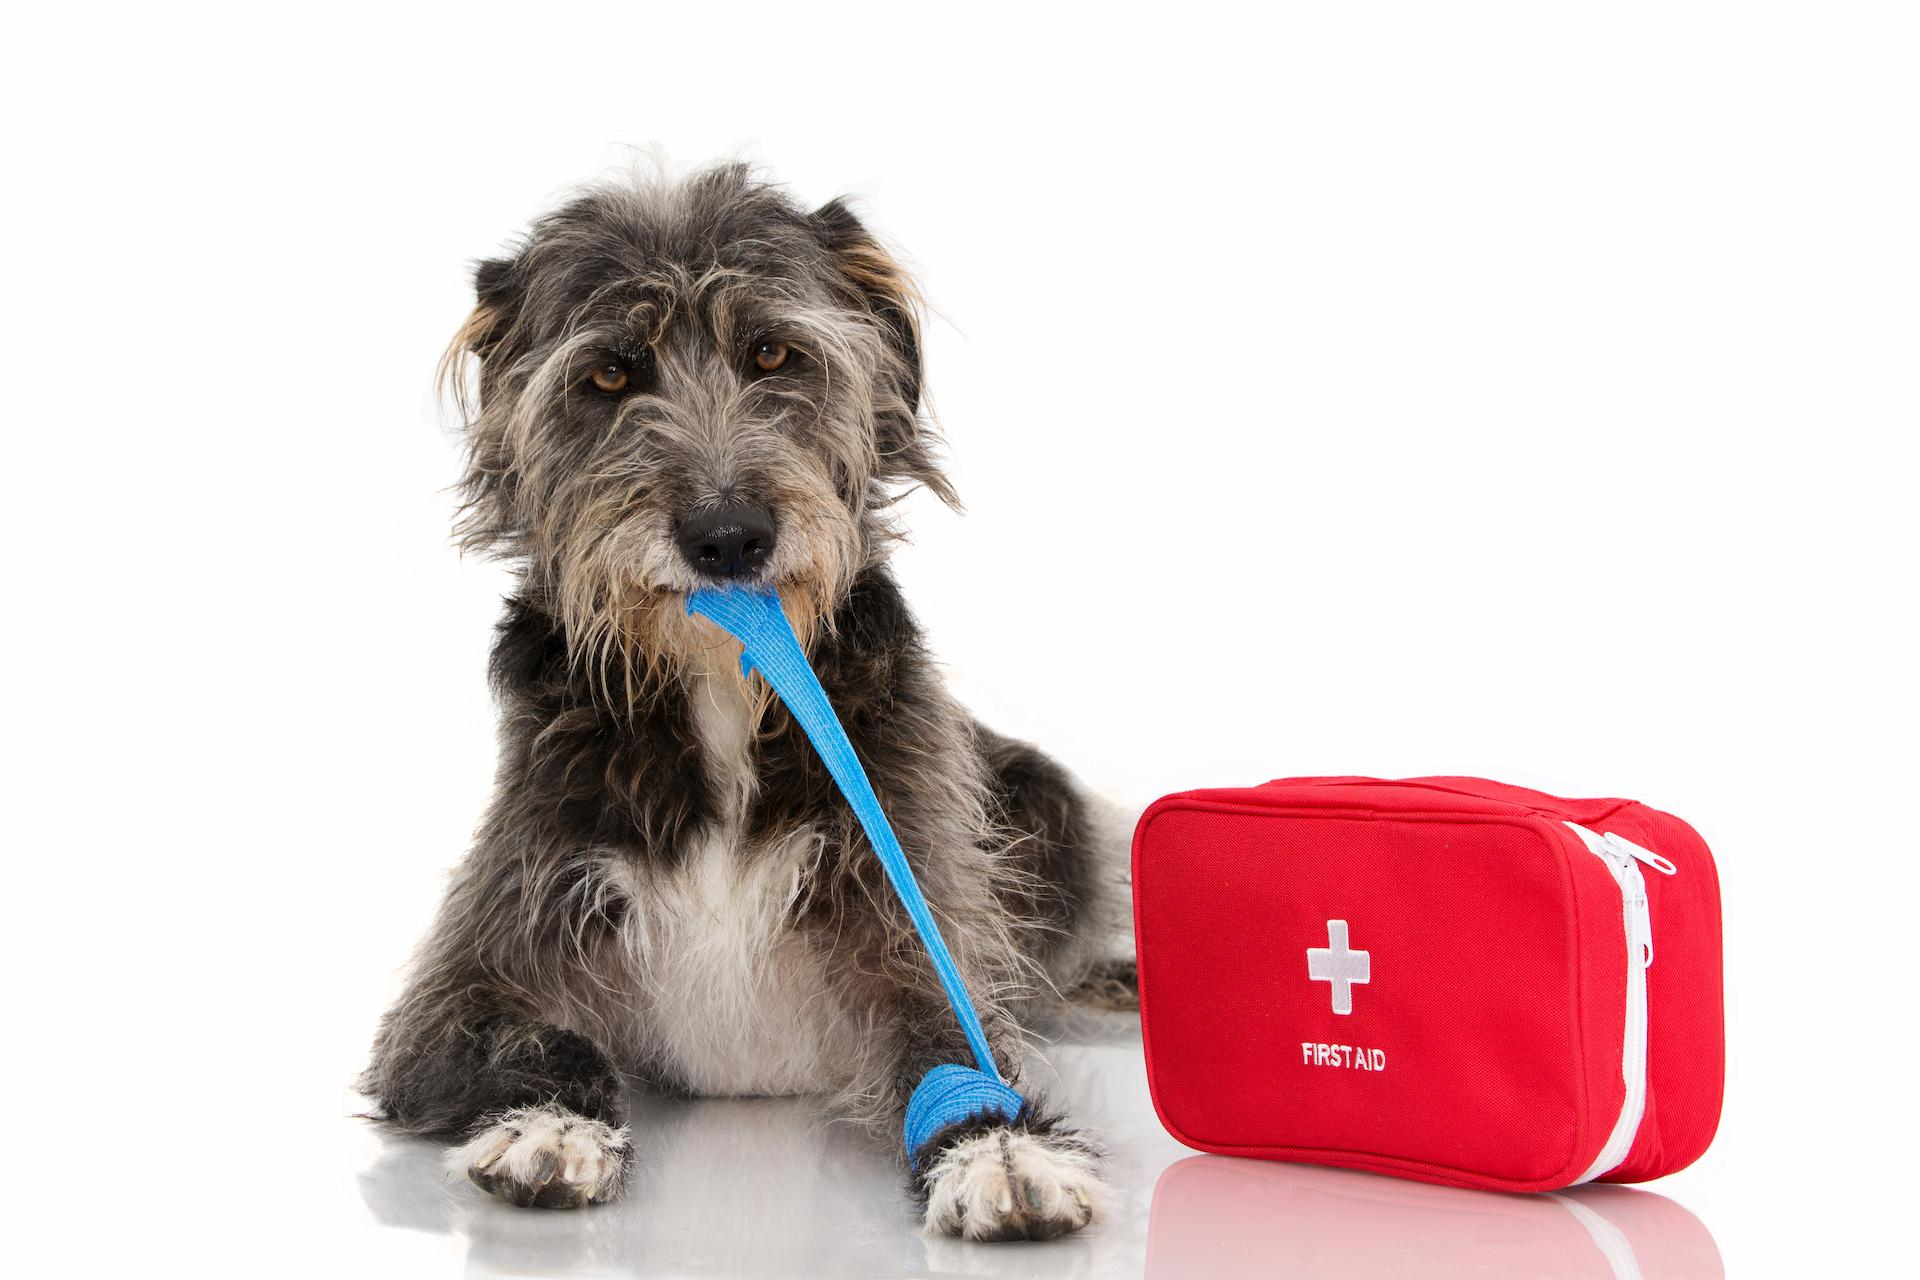 When choosing a dog bandage, consider the type of wound the dog has, what the bandage is made of, what part of the body the wound...